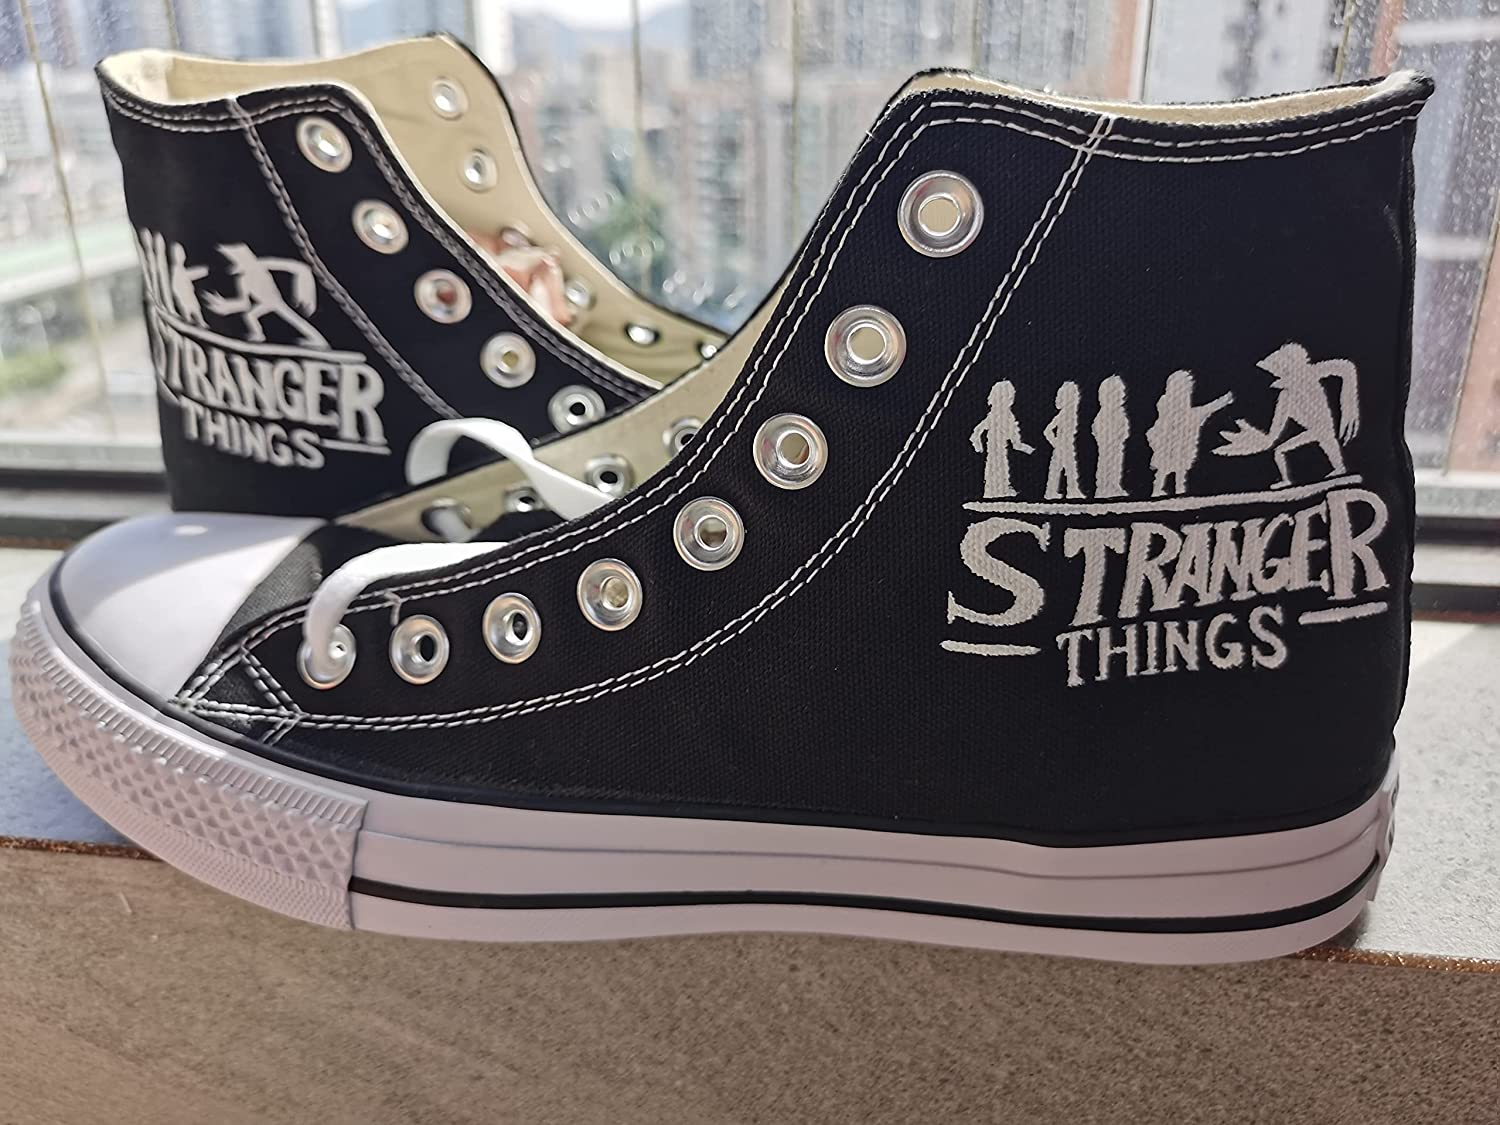 Stranger Things Shoes Hand Painted Sneakers quality assurance Men High 2021 autumn and winter new Women